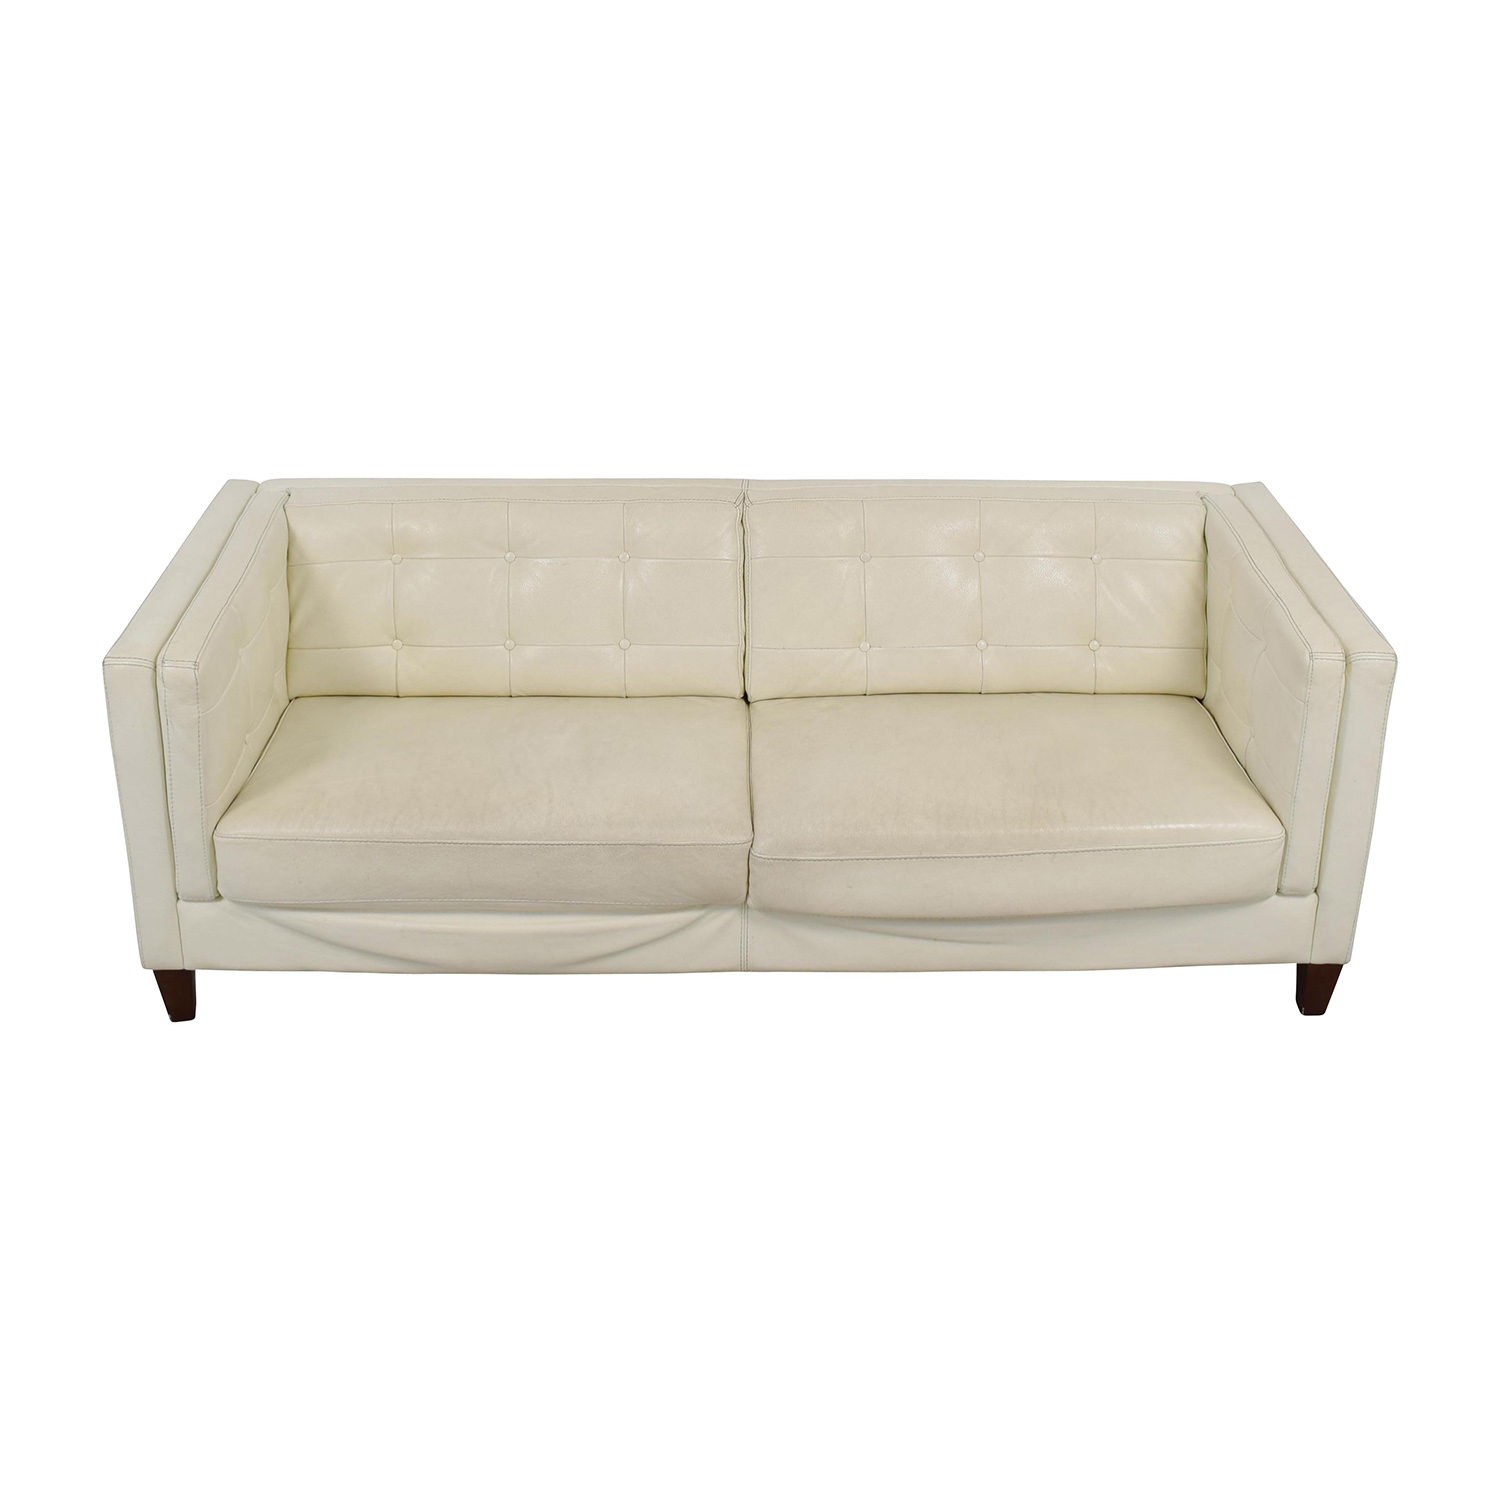 ... Macys Tufted Pearl White Faux Leather Couch / Classic Sofas ...